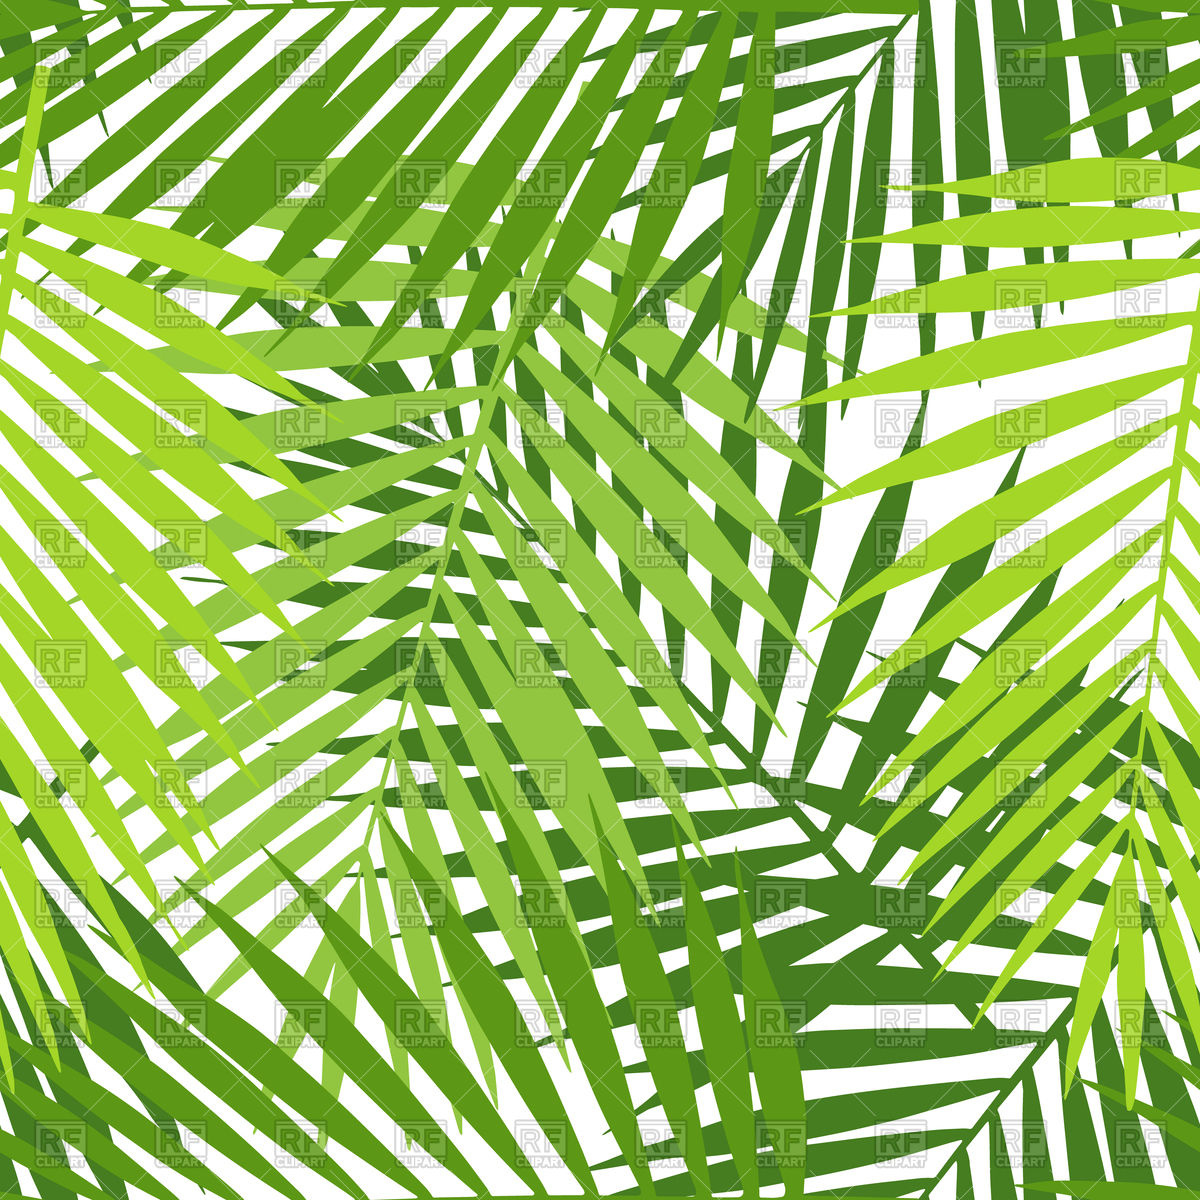 Free Palm Branch Cliparts, Download Free Clip Art, Free Clip Art on.